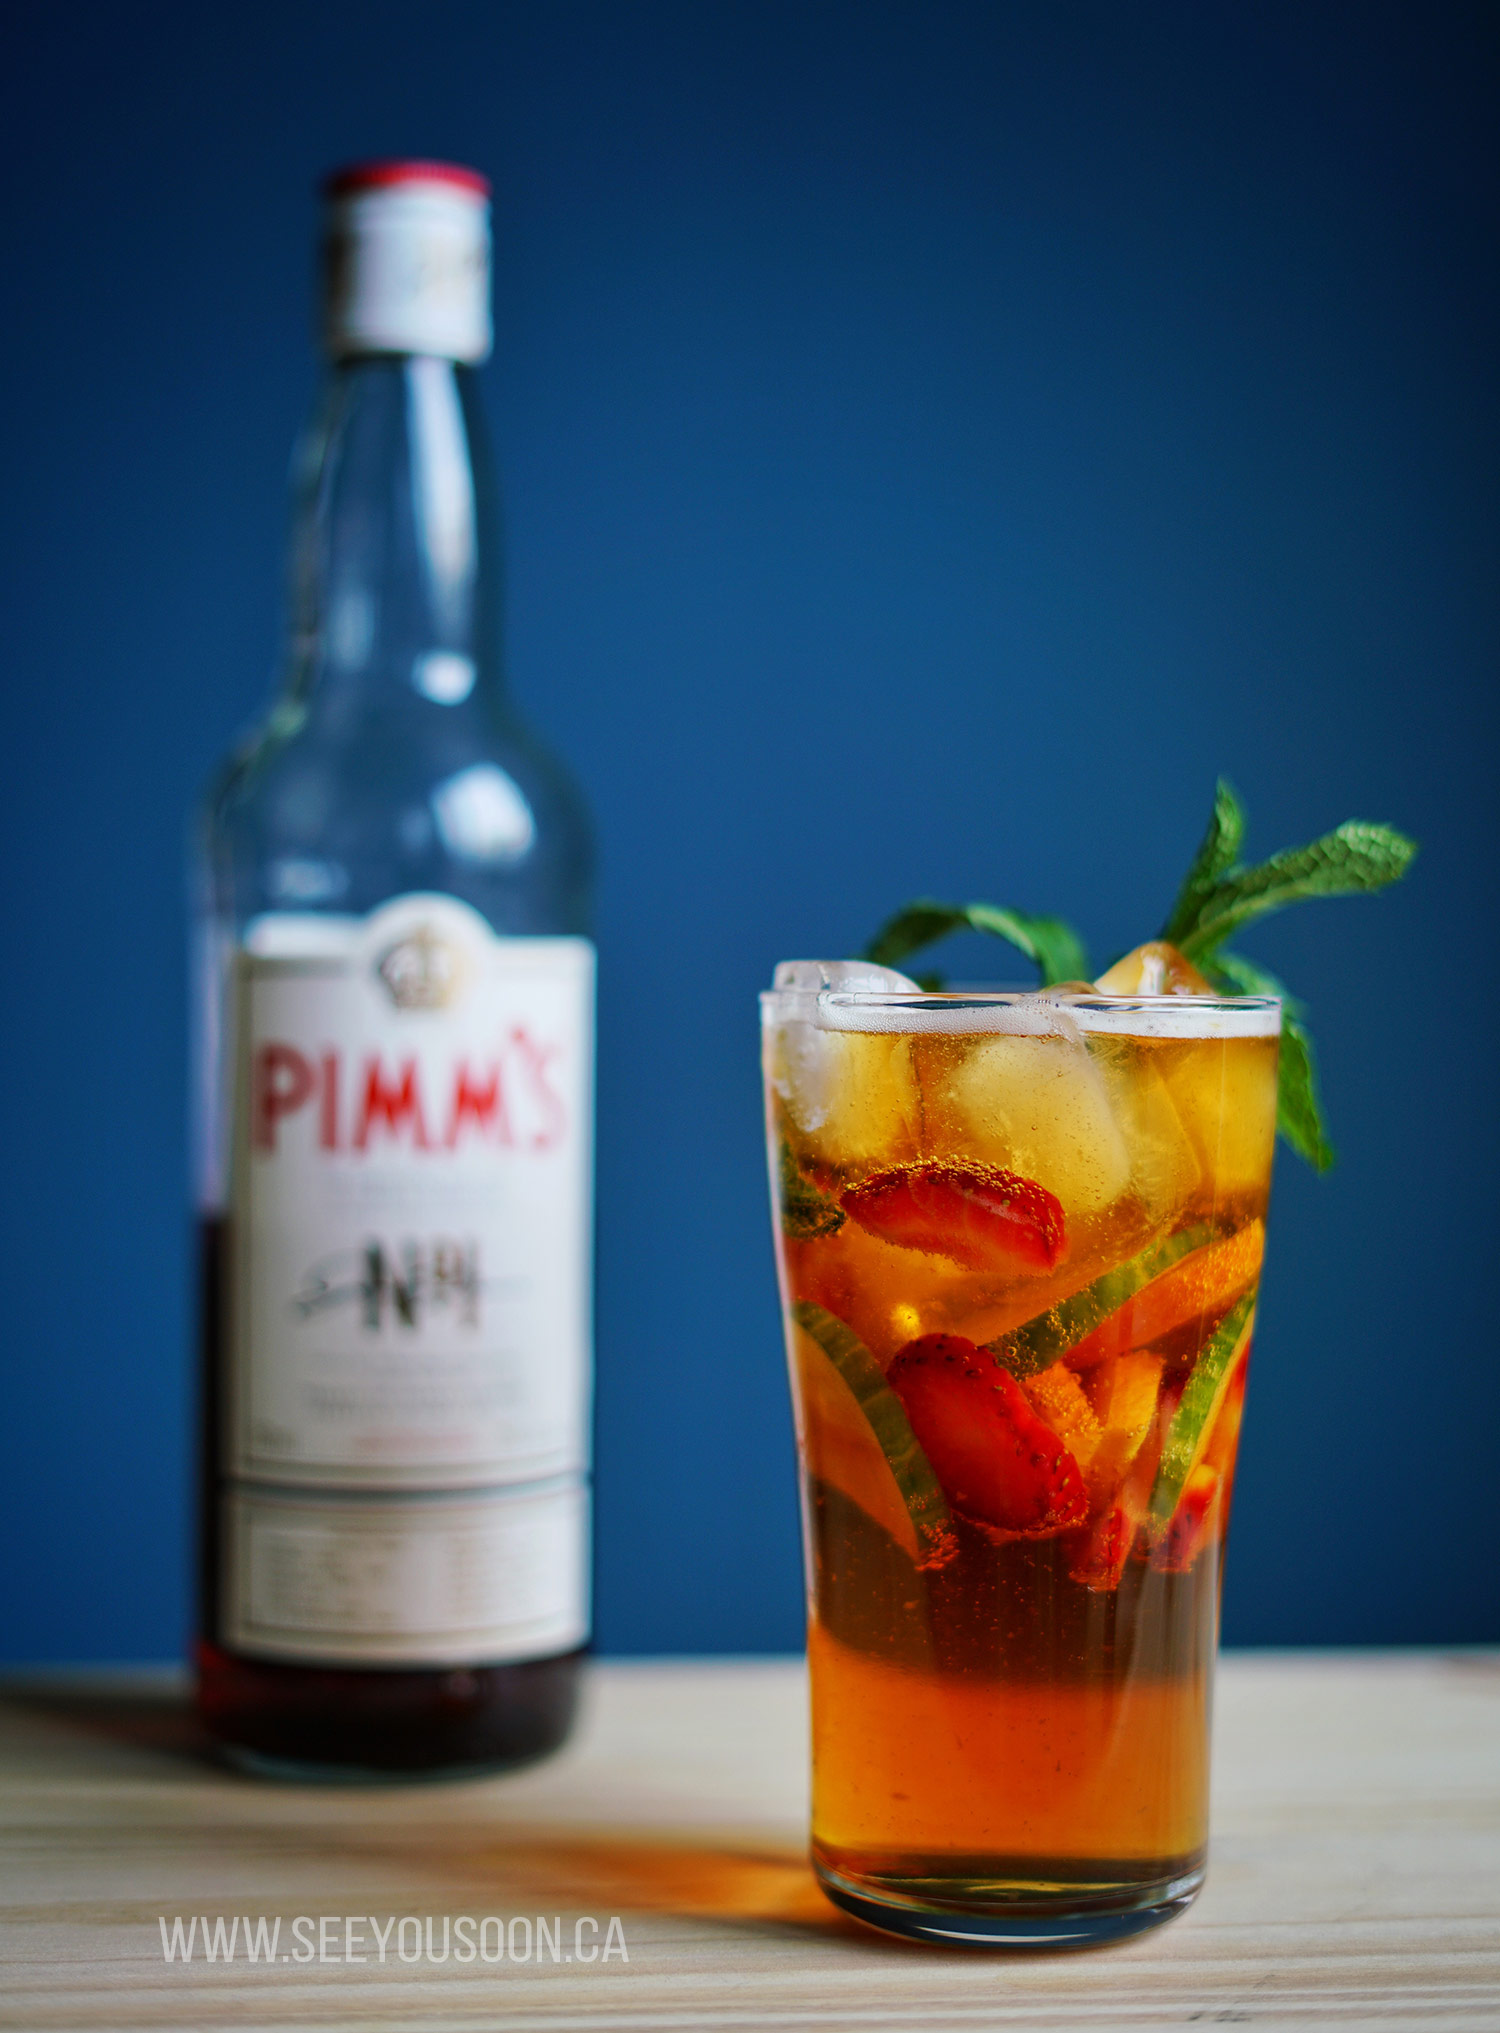 Pimm's No.1 Cup Cocktail